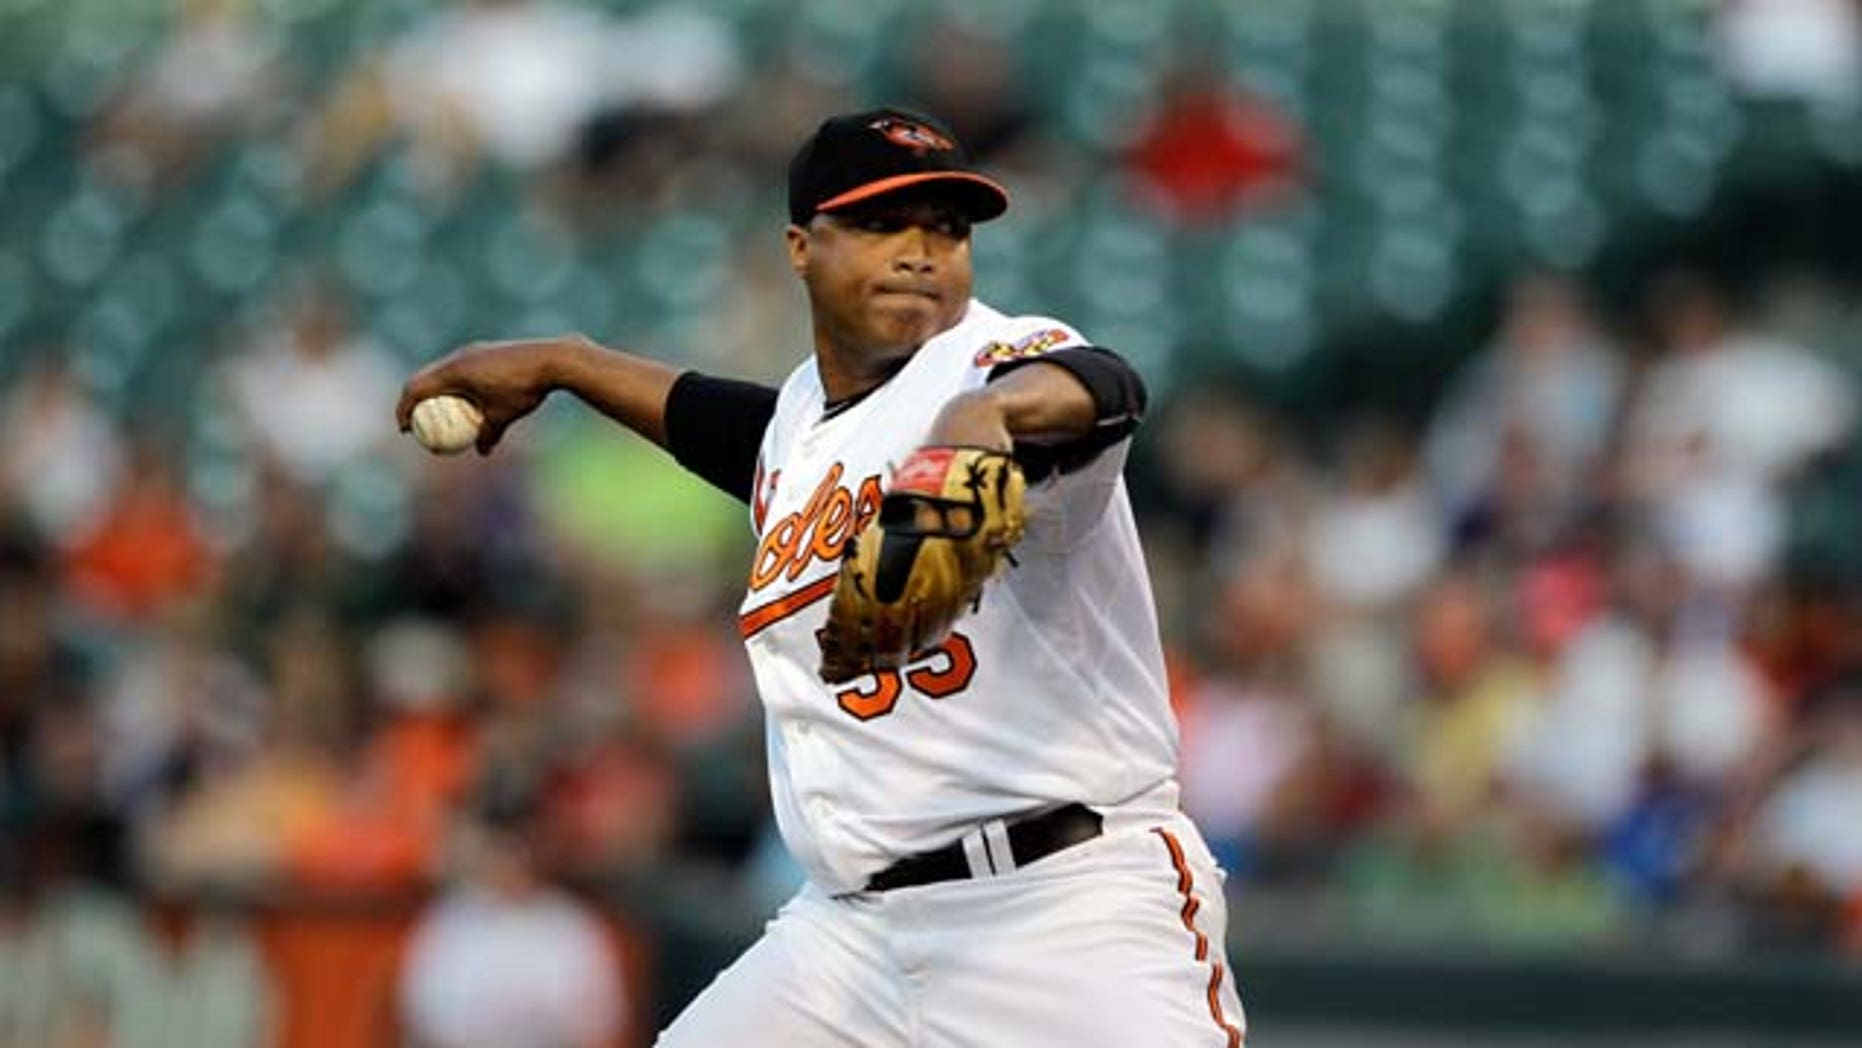 BALTIMORE, MD - JULY 16:  Starting pitcher Alfredo Simon #55 of the Baltimore Orioles delivers to a Cleveland Indians batter at Oriole Park at Camden Yards on July 16, 2011 in Baltimore, Maryland.  (Photo by Rob Carr/Getty Images)